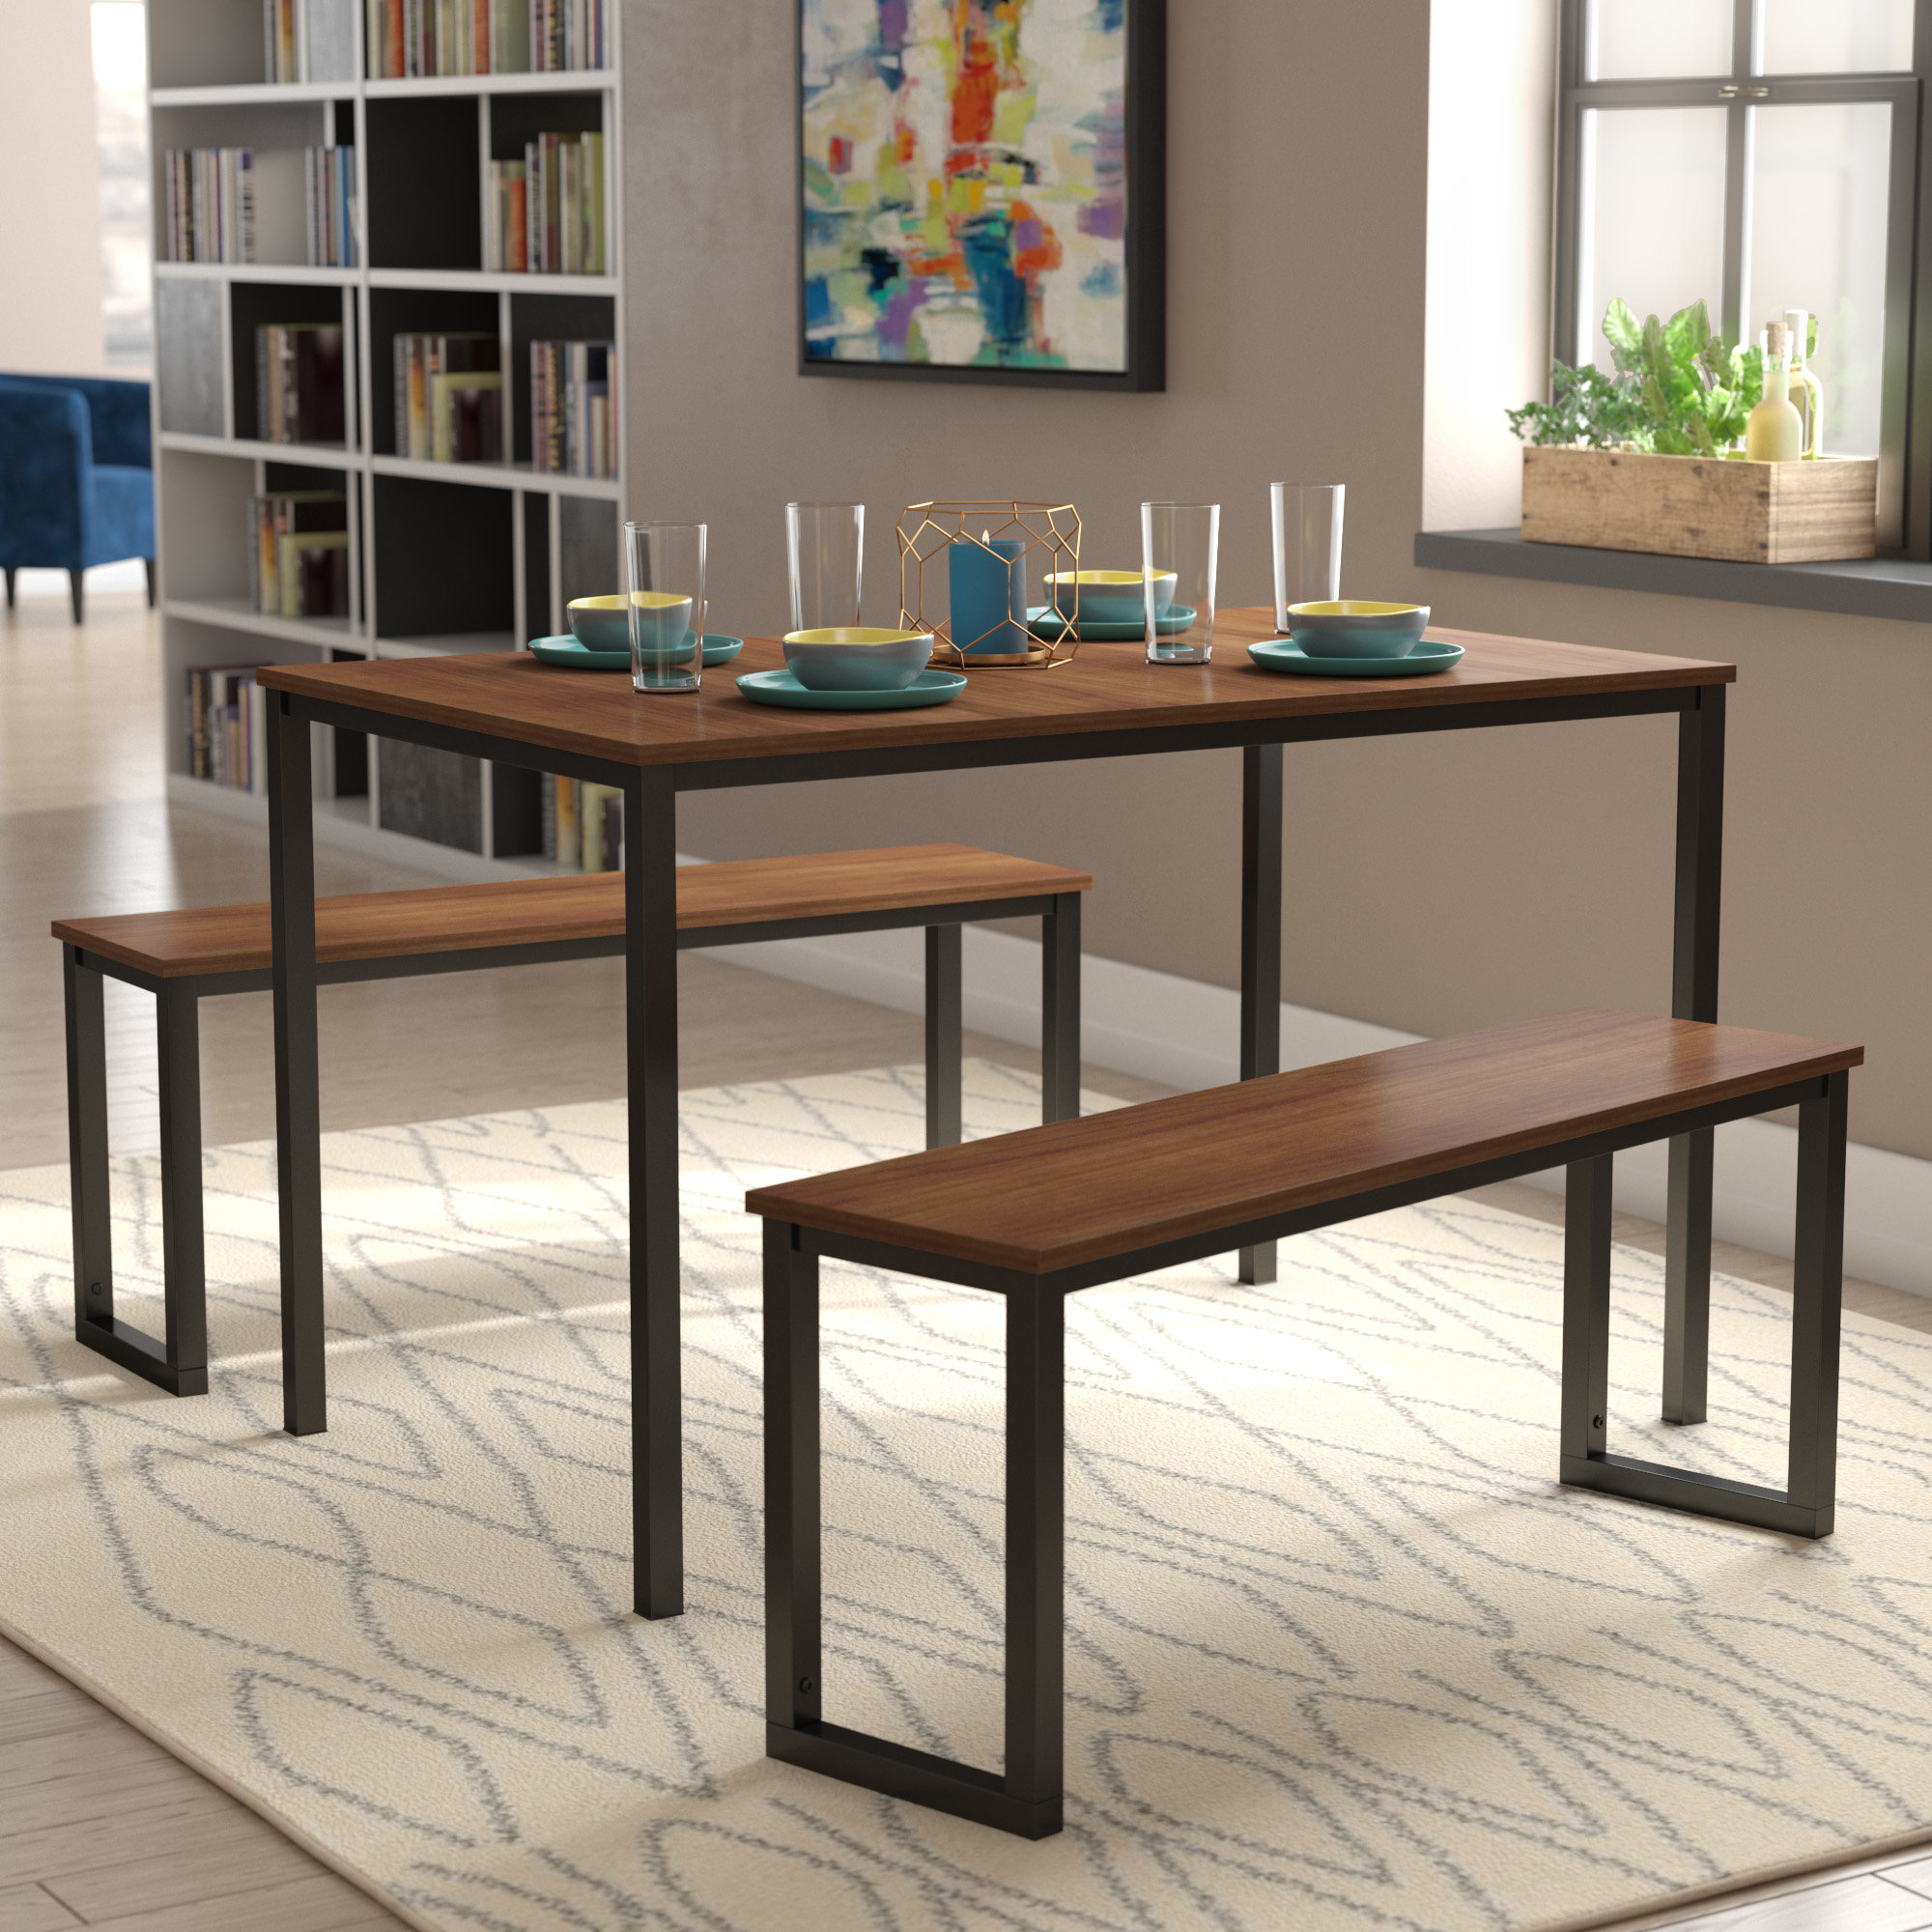 Modern Rustic Interiors Frida 3 Piece Dining Table Set Pertaining To Most Up To Date Shepparton Vintage 3 Piece Dining Sets (Photo 6 of 20)